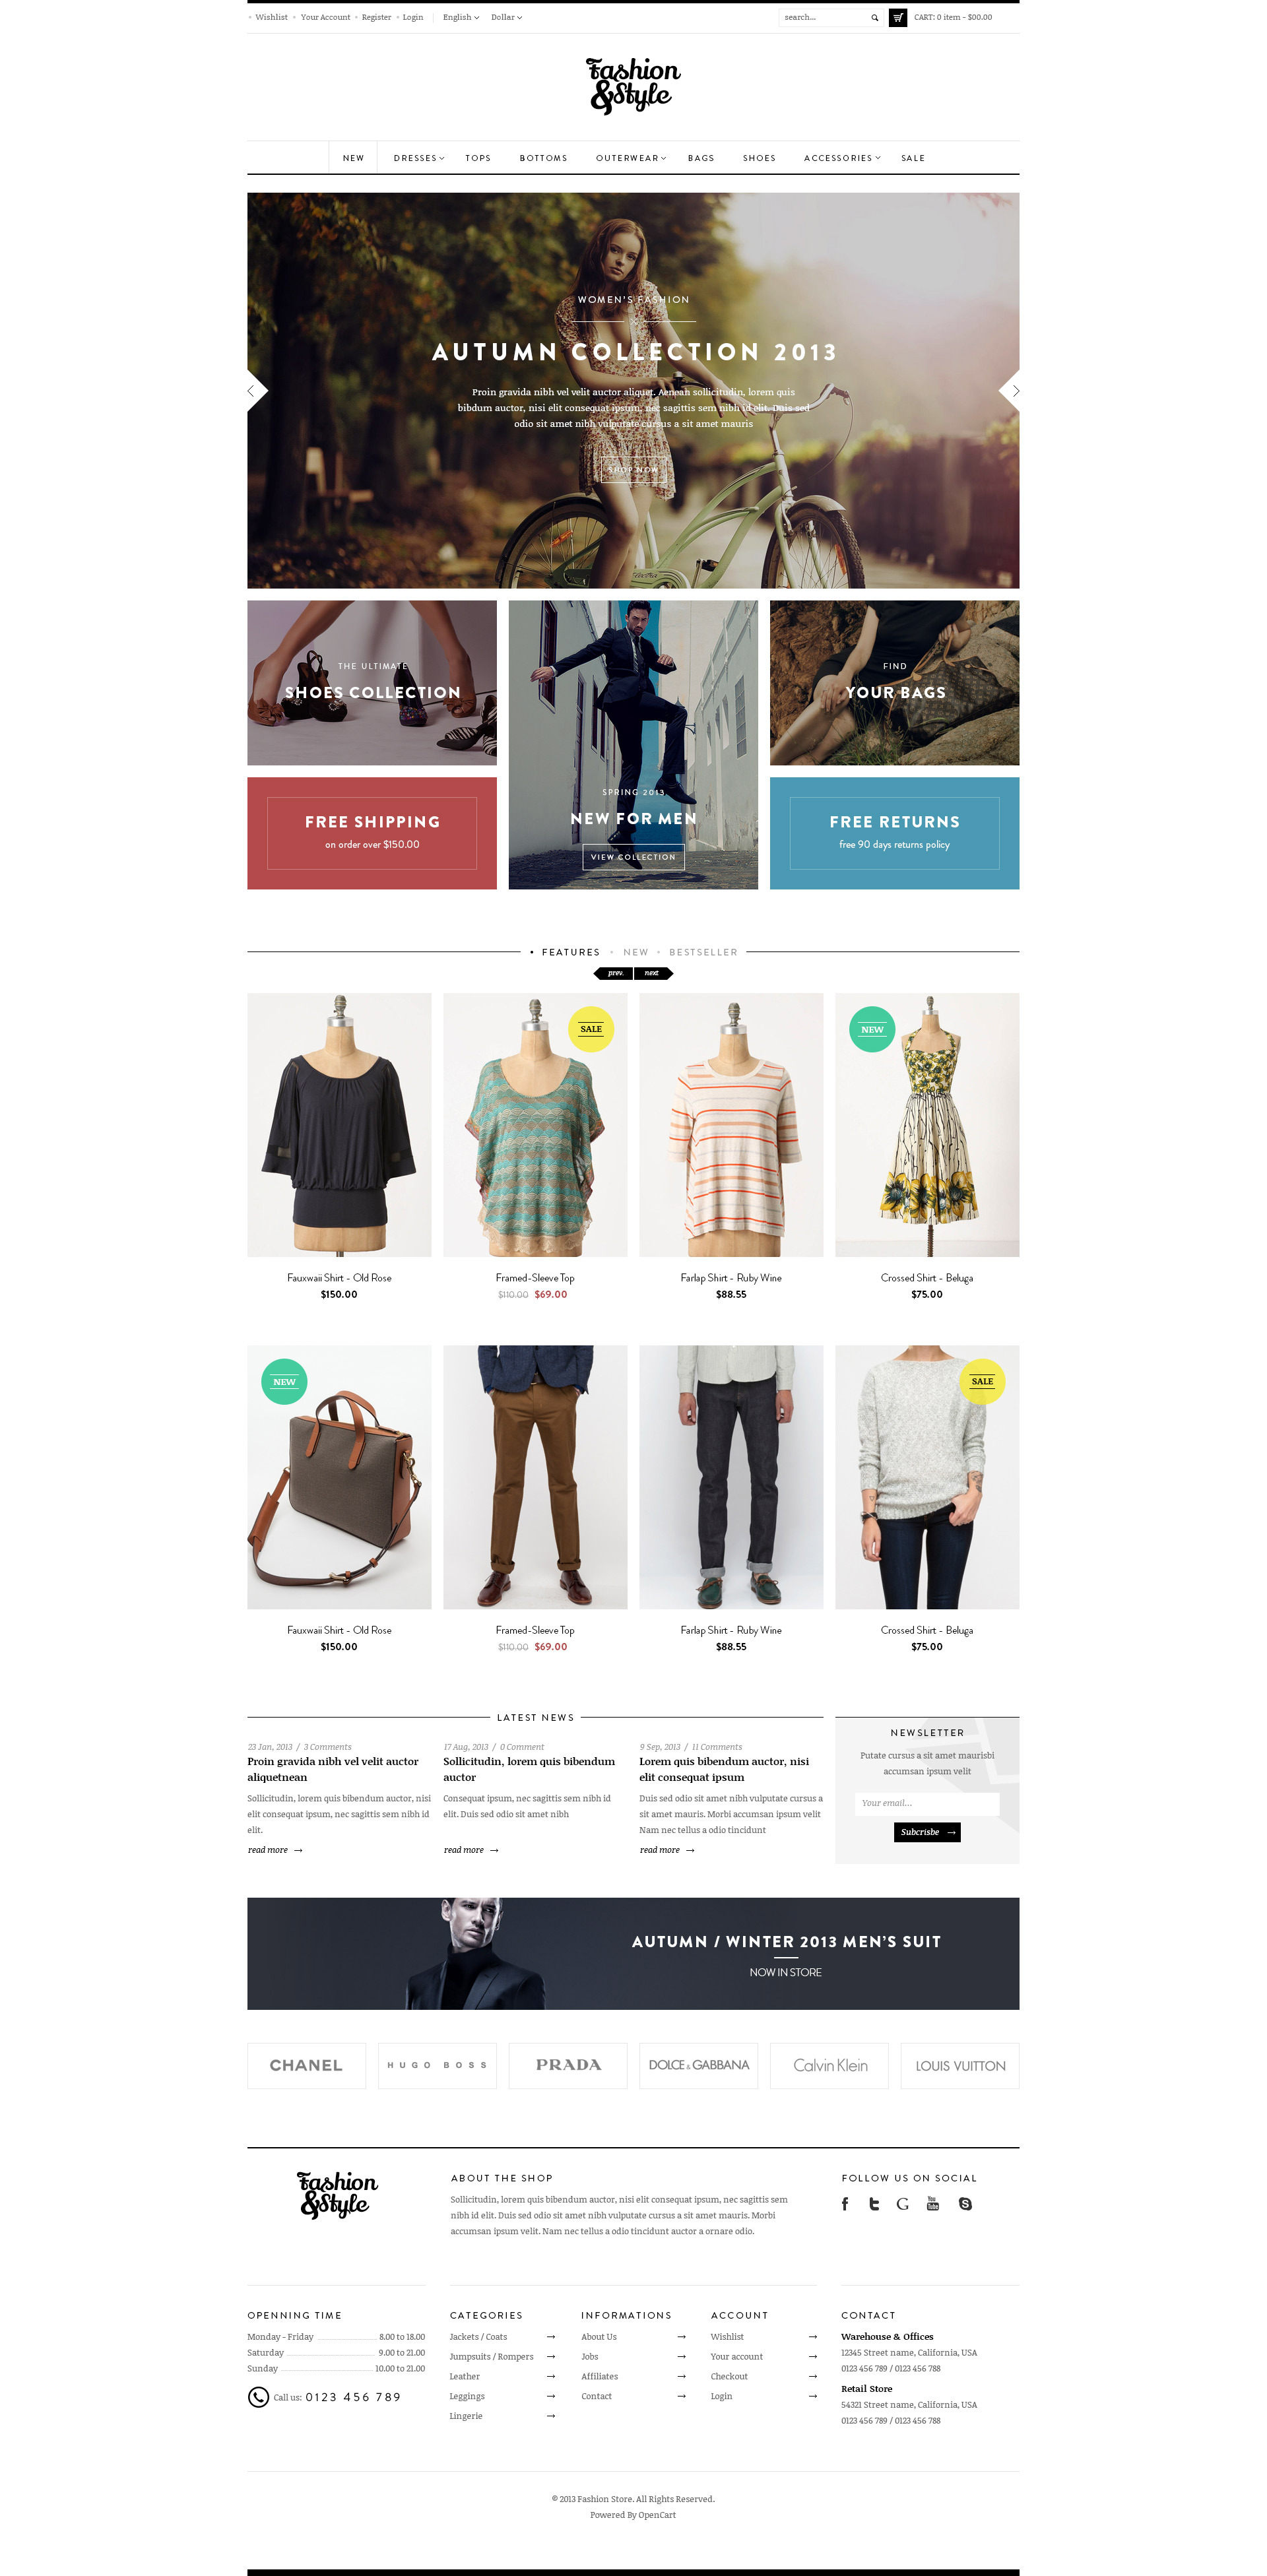 Themeforest Website Templates and Themes